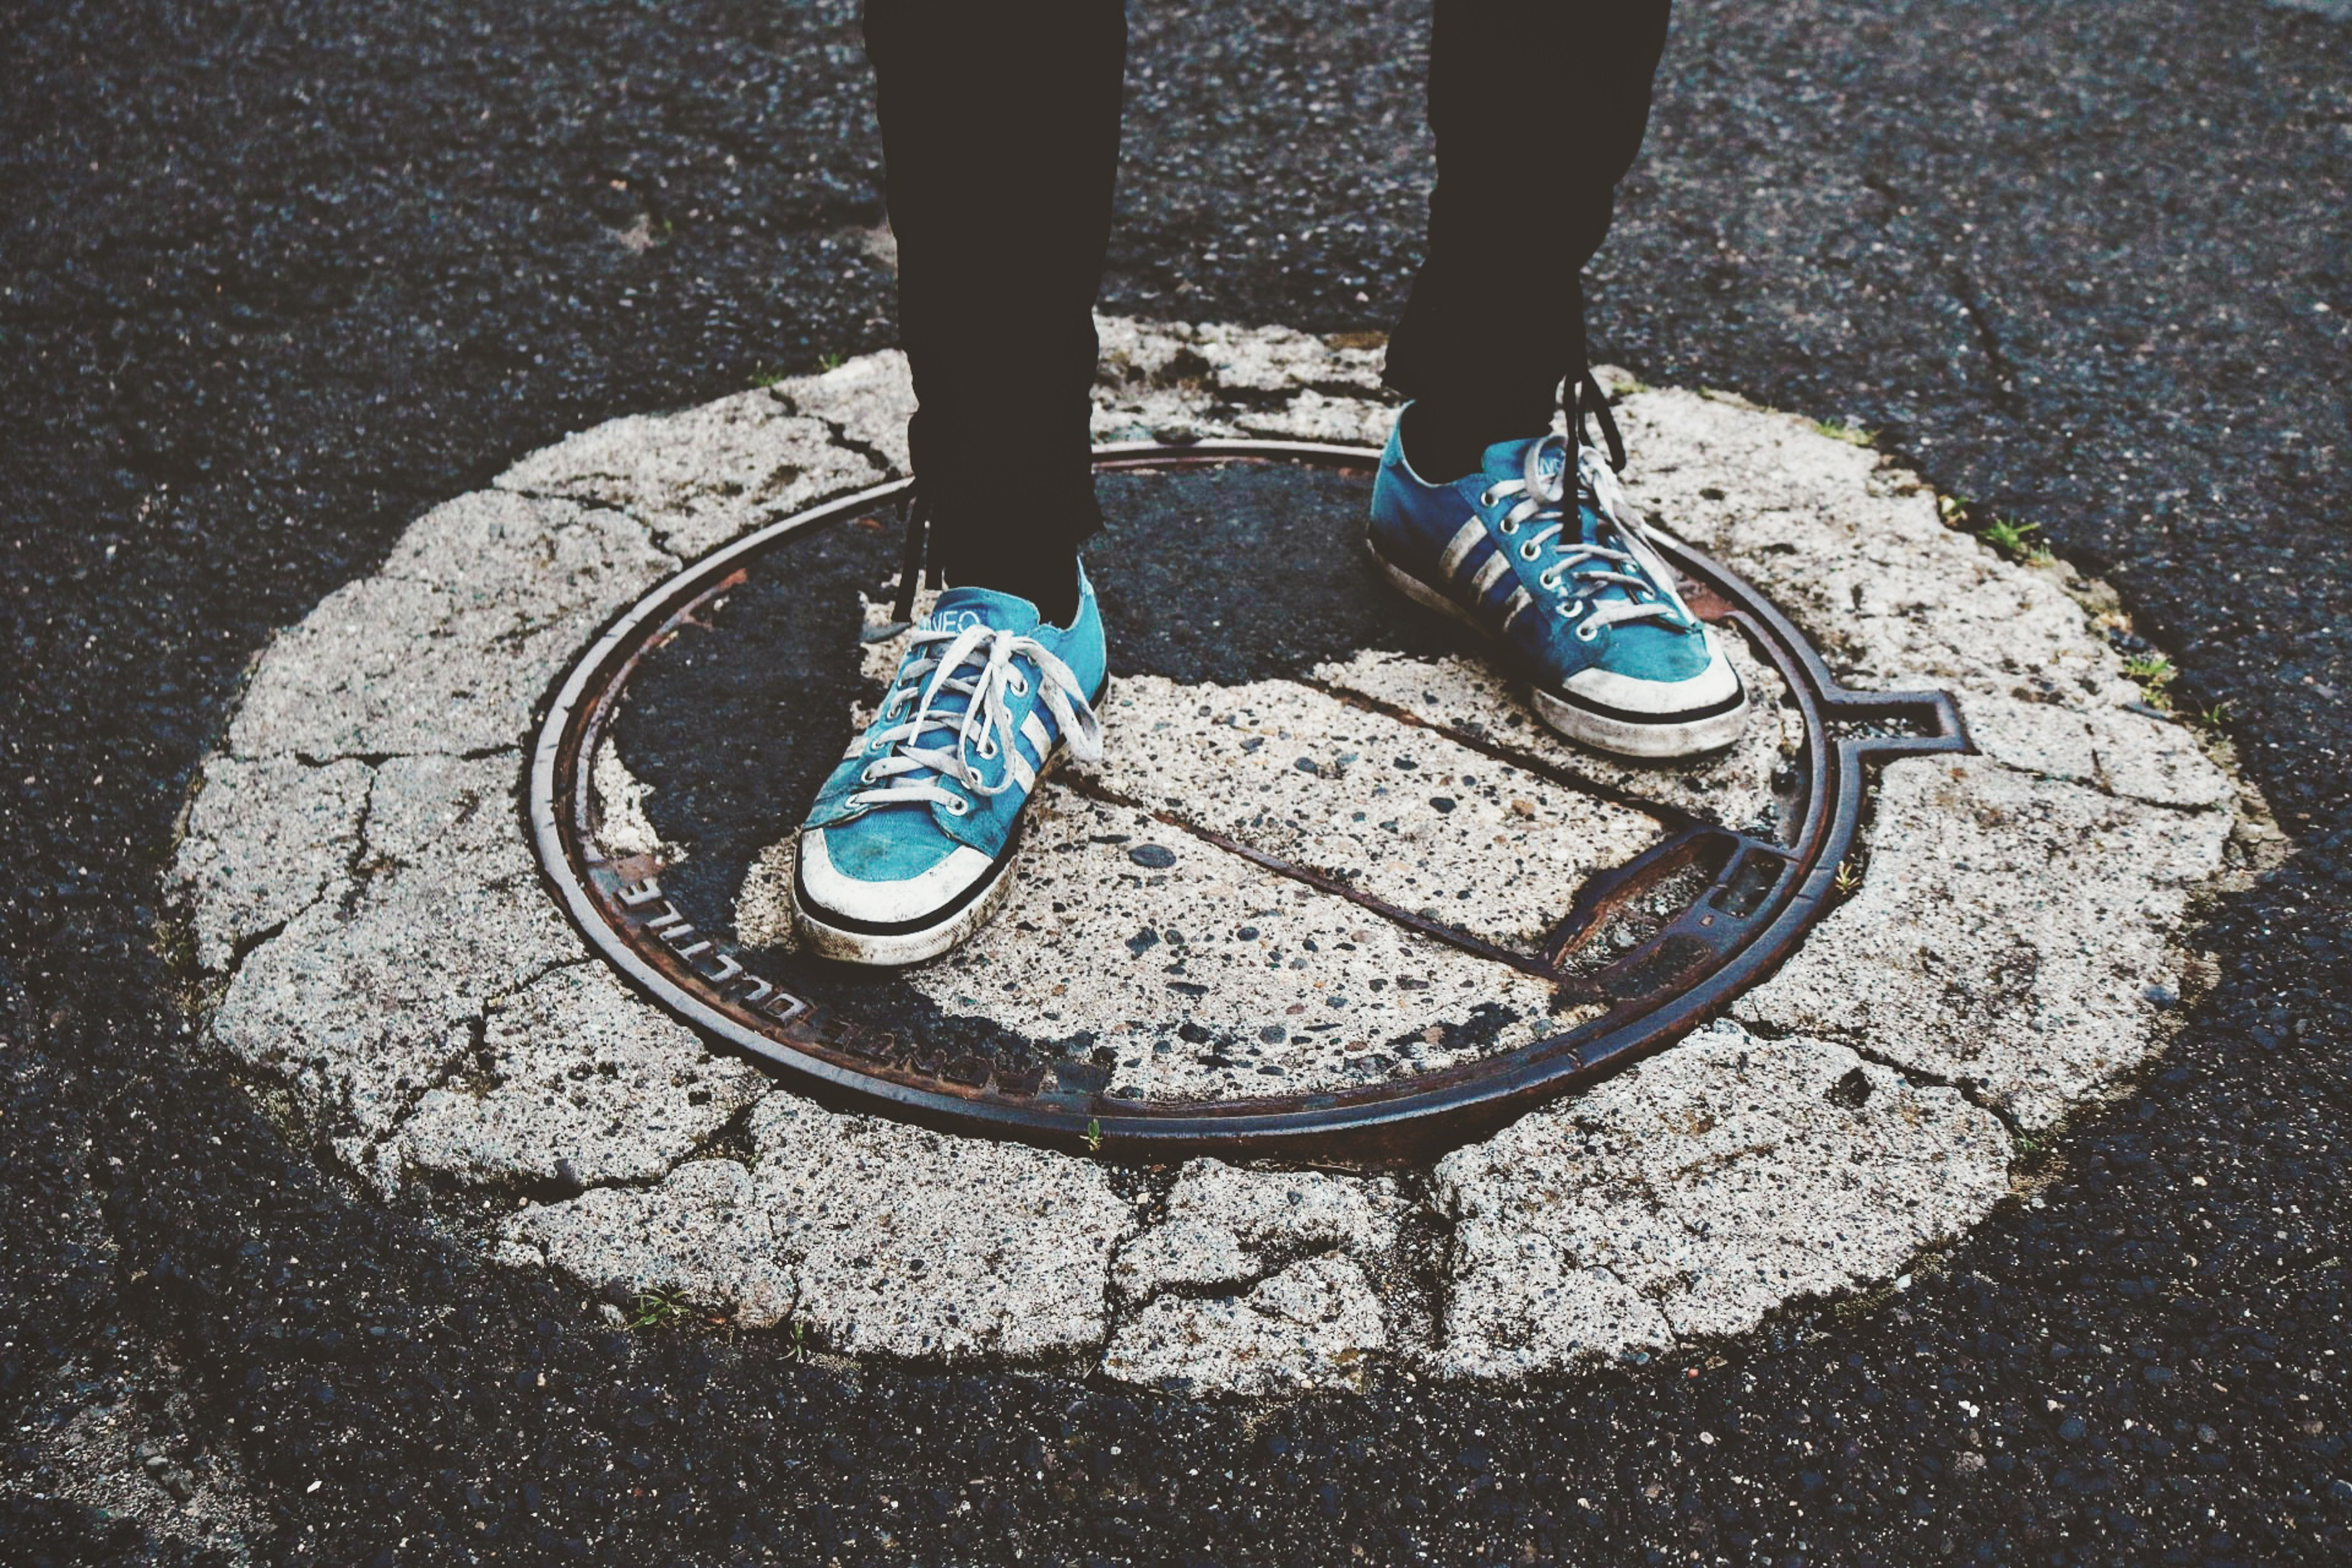 The elderly stranger offered the young man to jump on the manhole cover. | Photo: Pexels/Sebastian Stam